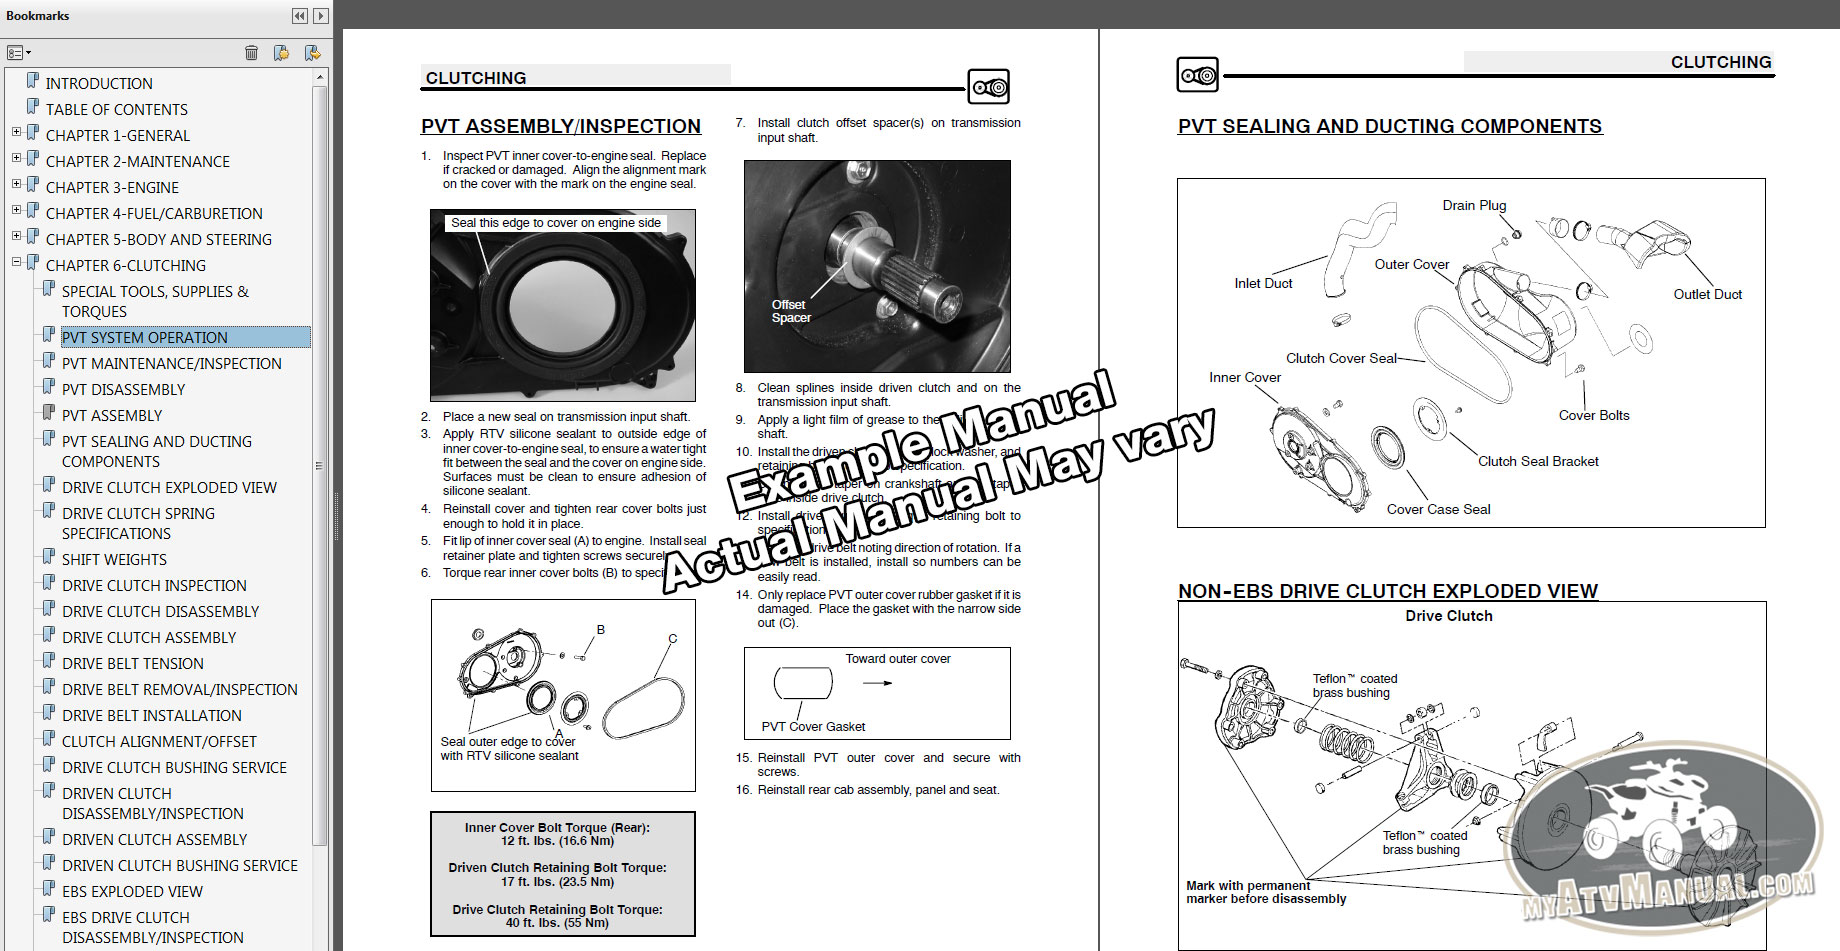 atv-sample-1 Yamaha Moto Wiring Diagram on 98 yamaha warrior, mighty mule, chevy engine starter, cid distributor, chevy engine,